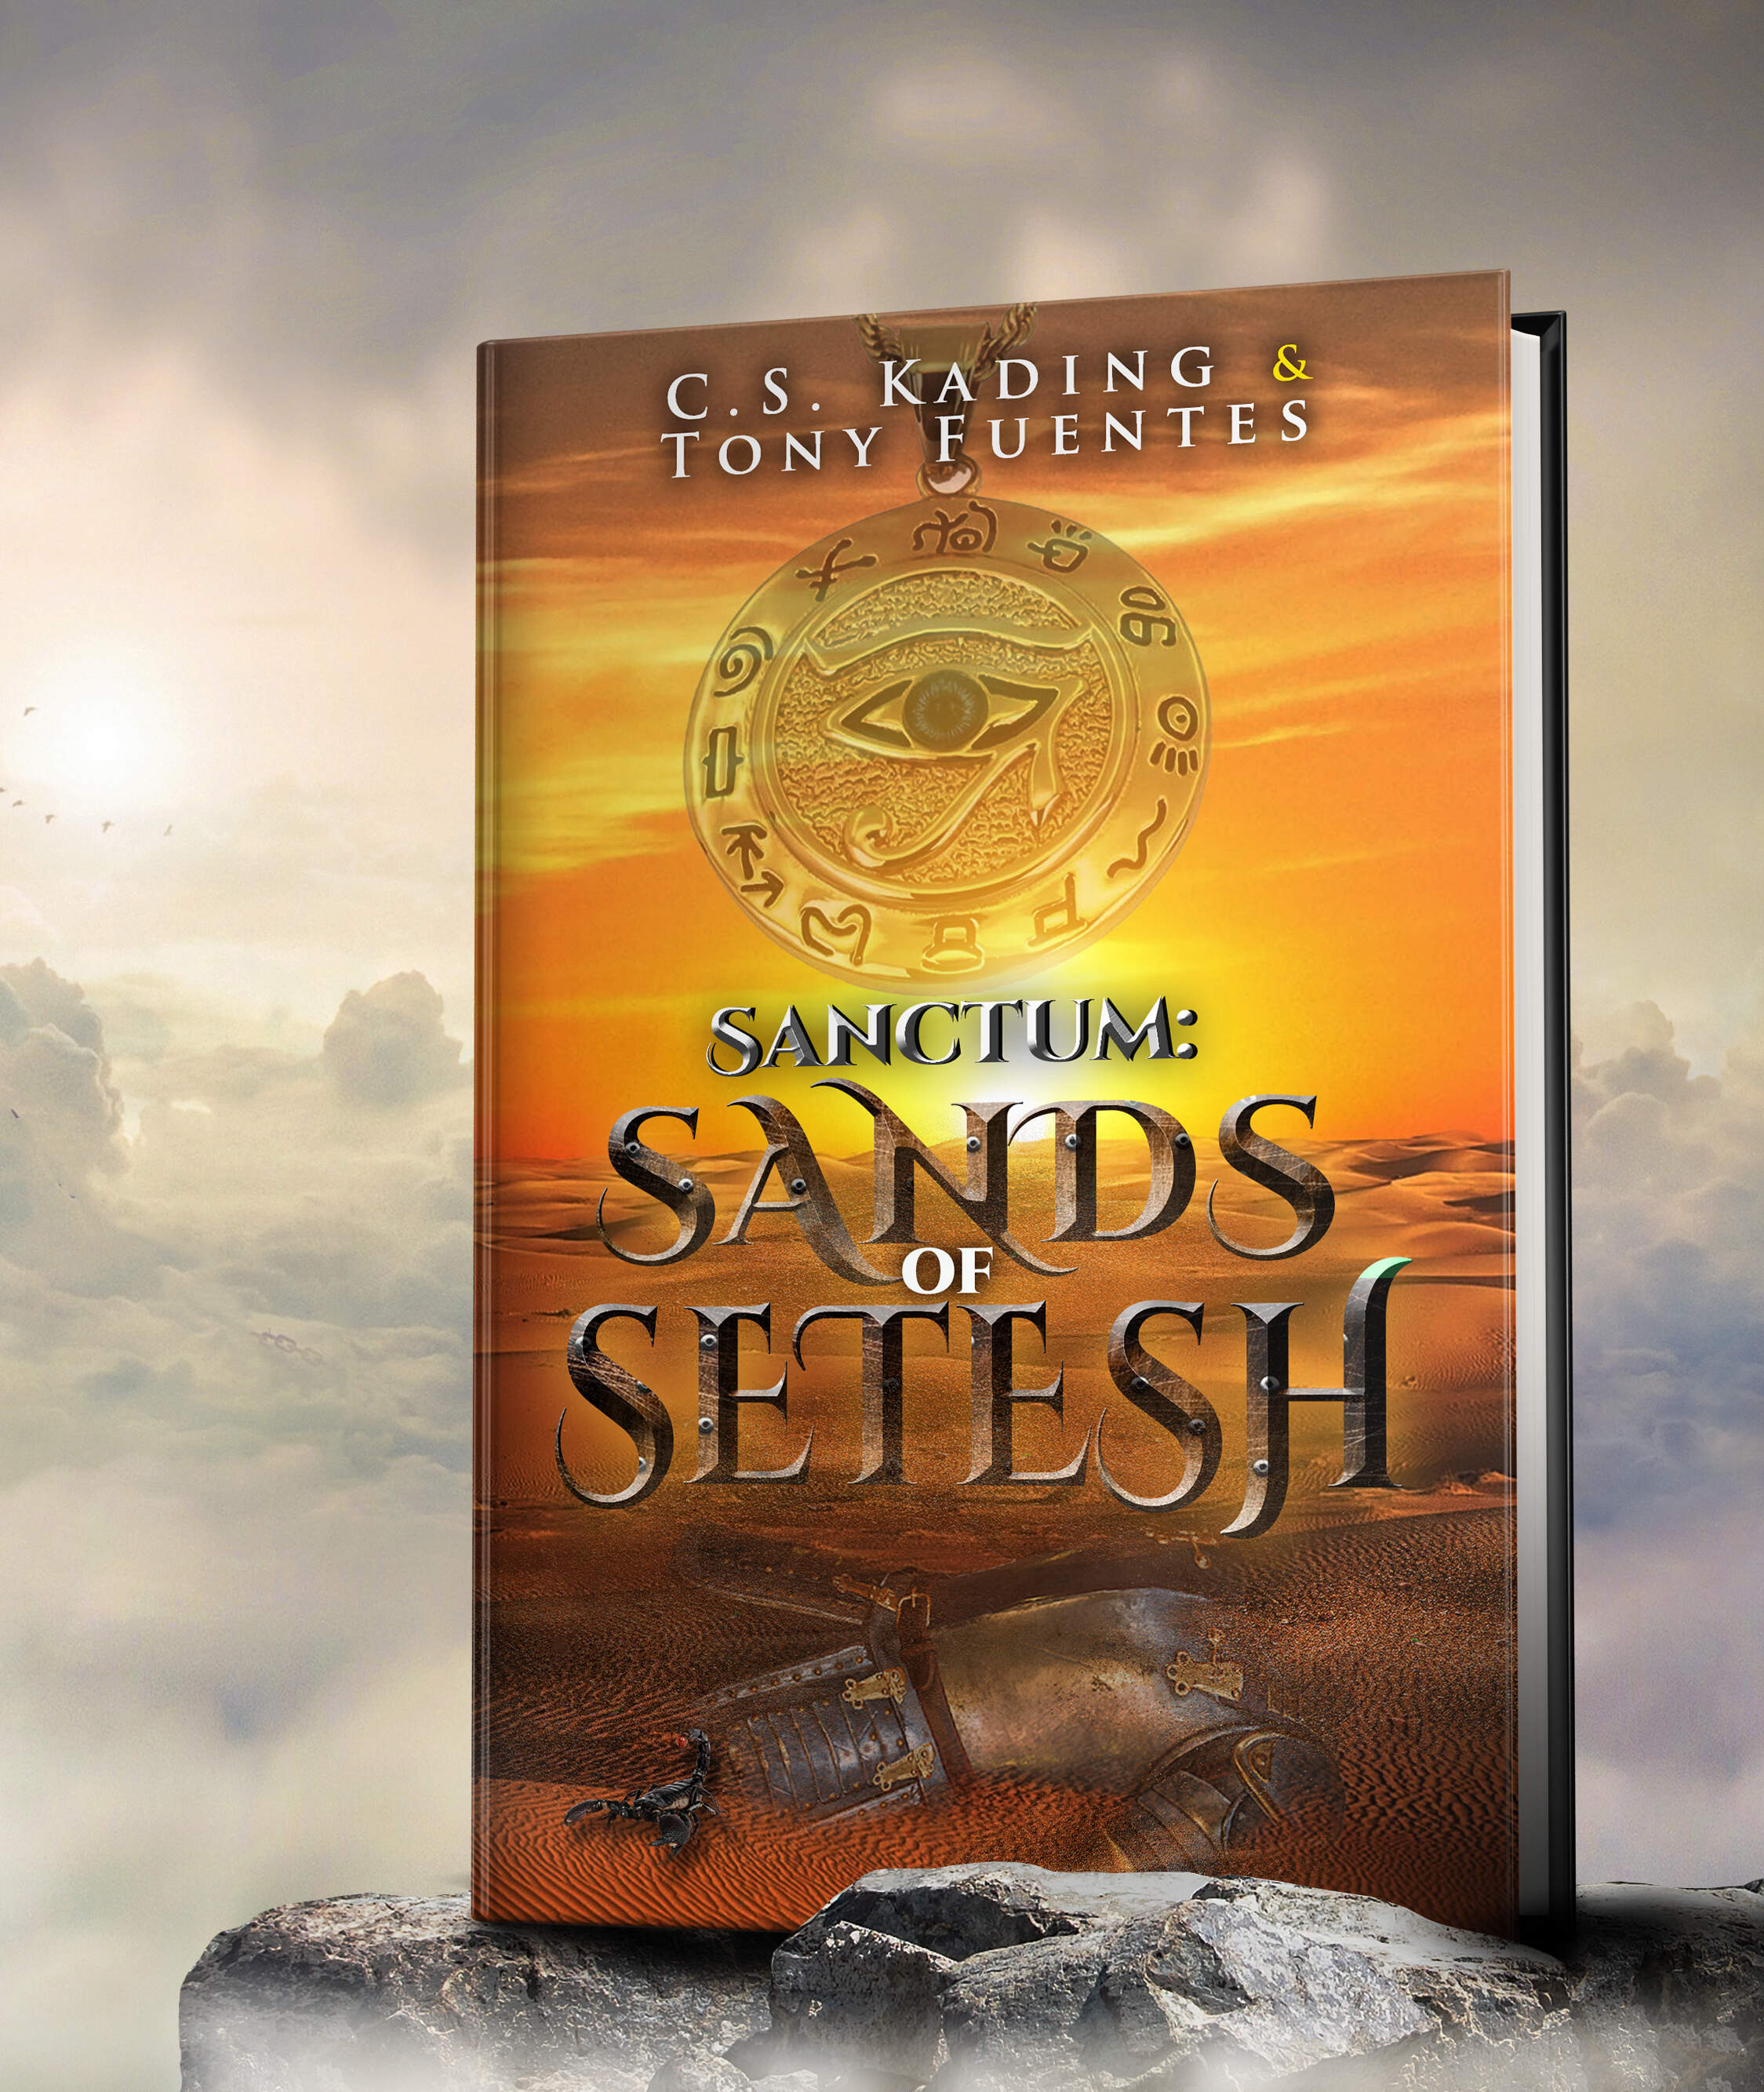 3D image of Sands of Setesh cover